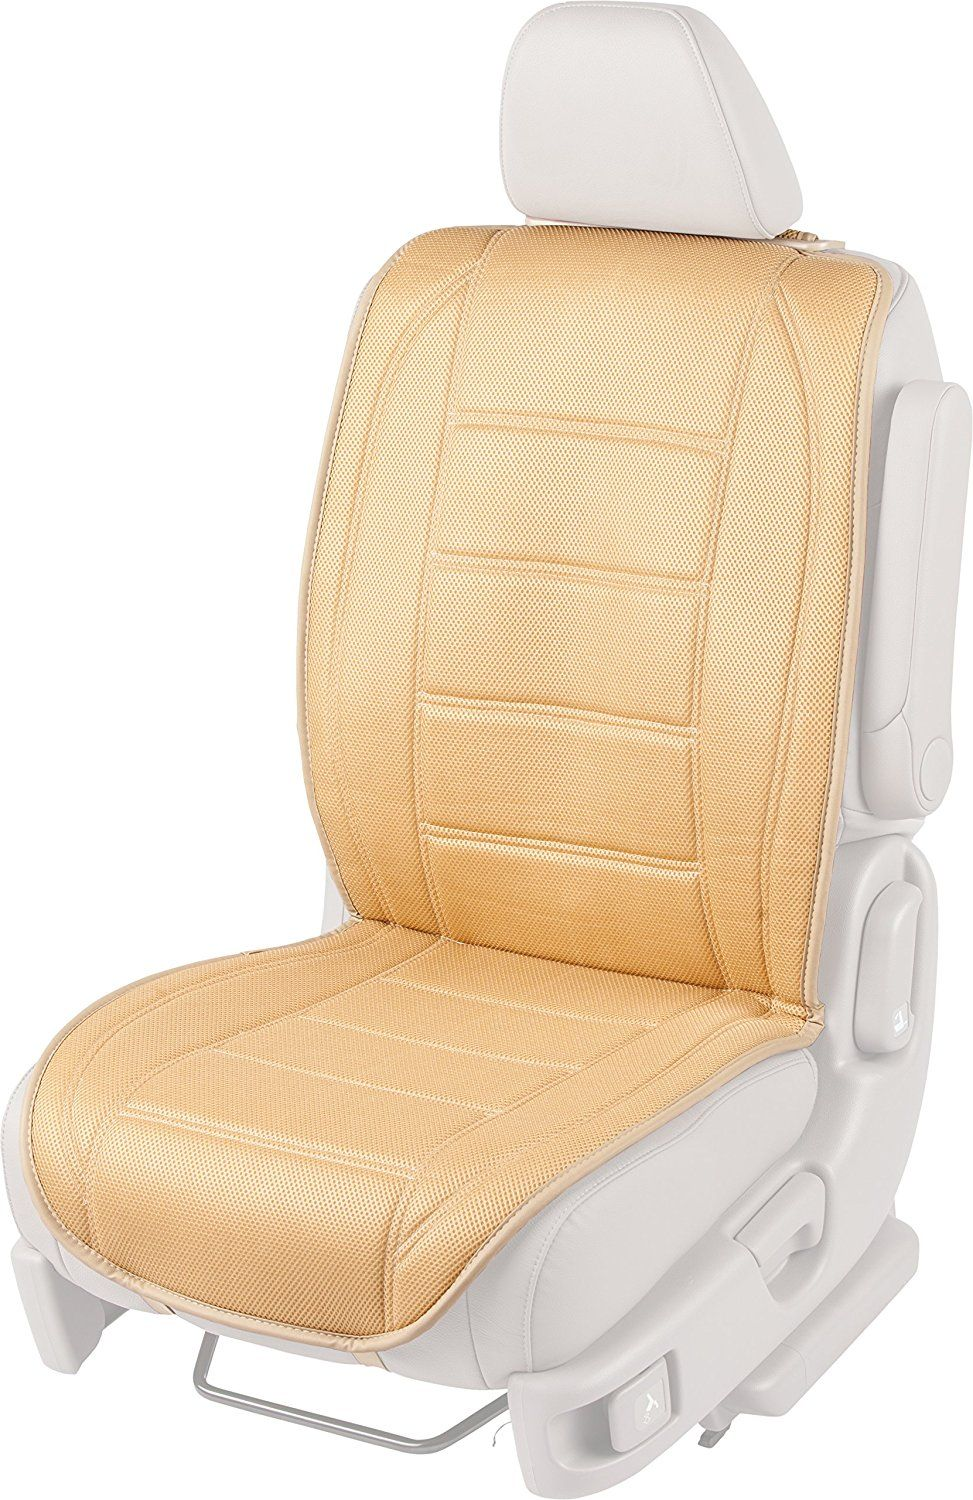 AirFlex 60274008 Beige Full Back Seat Cover